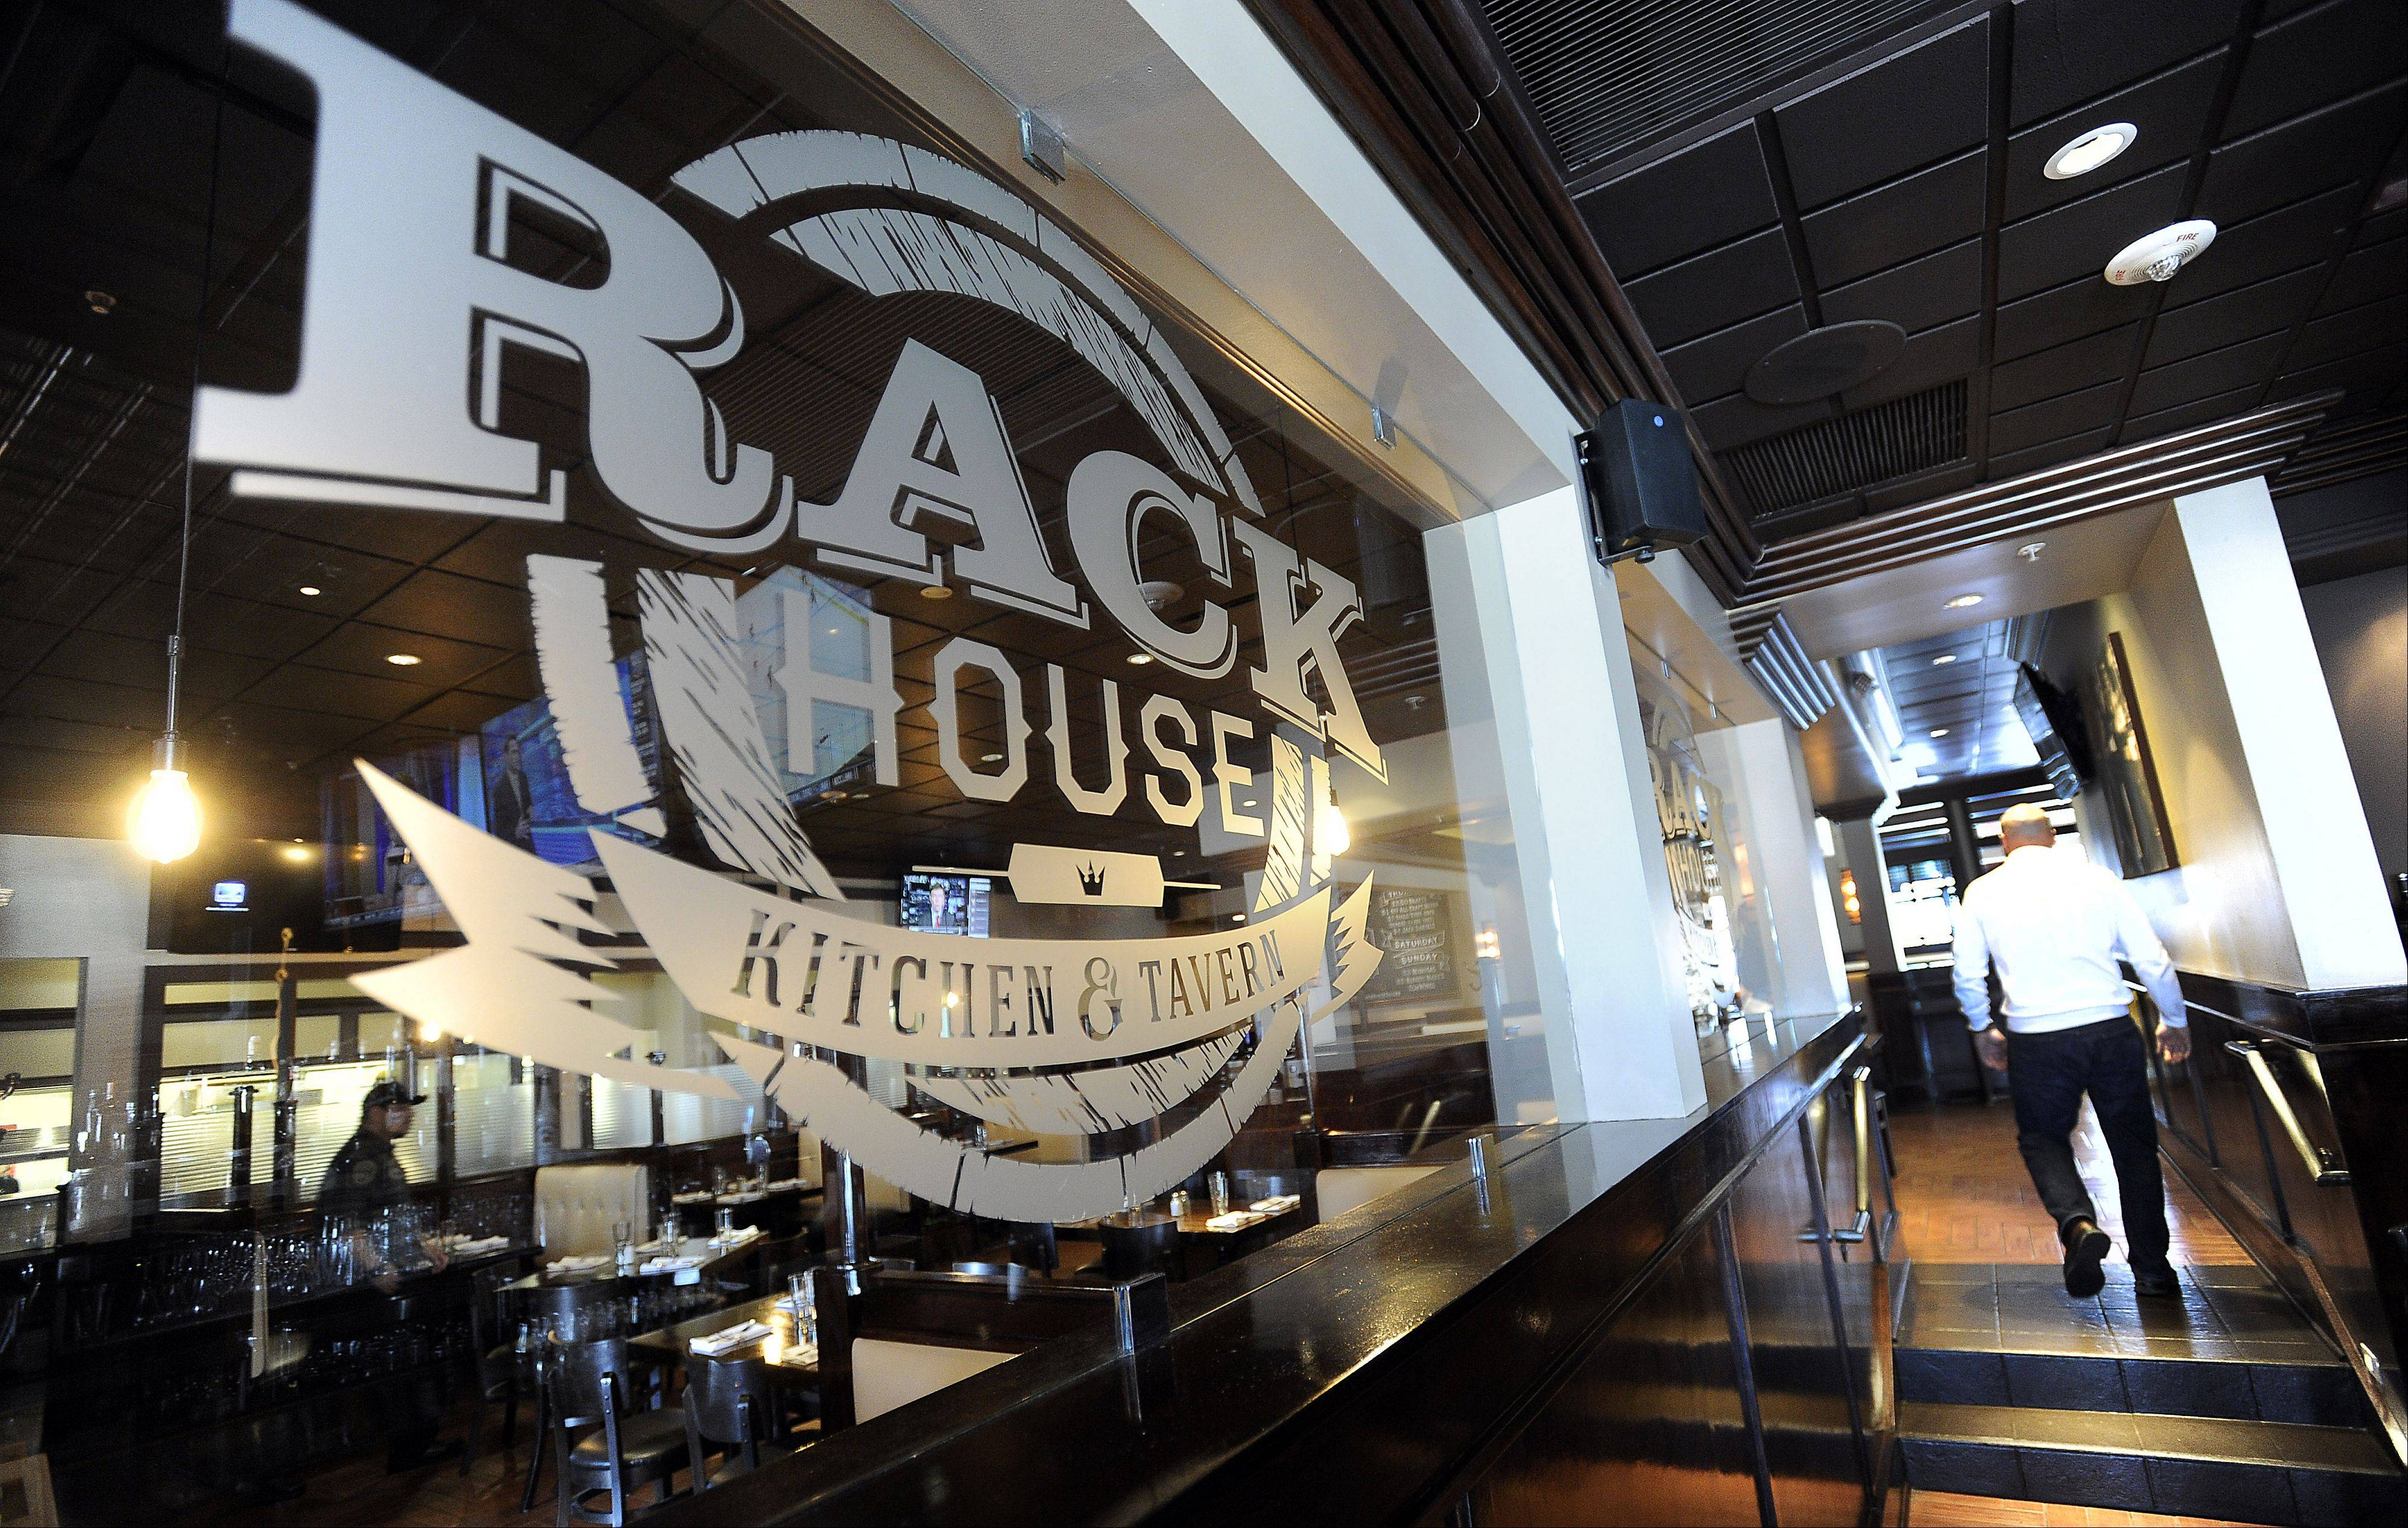 The Rack House Kitchen & Tavern is open.